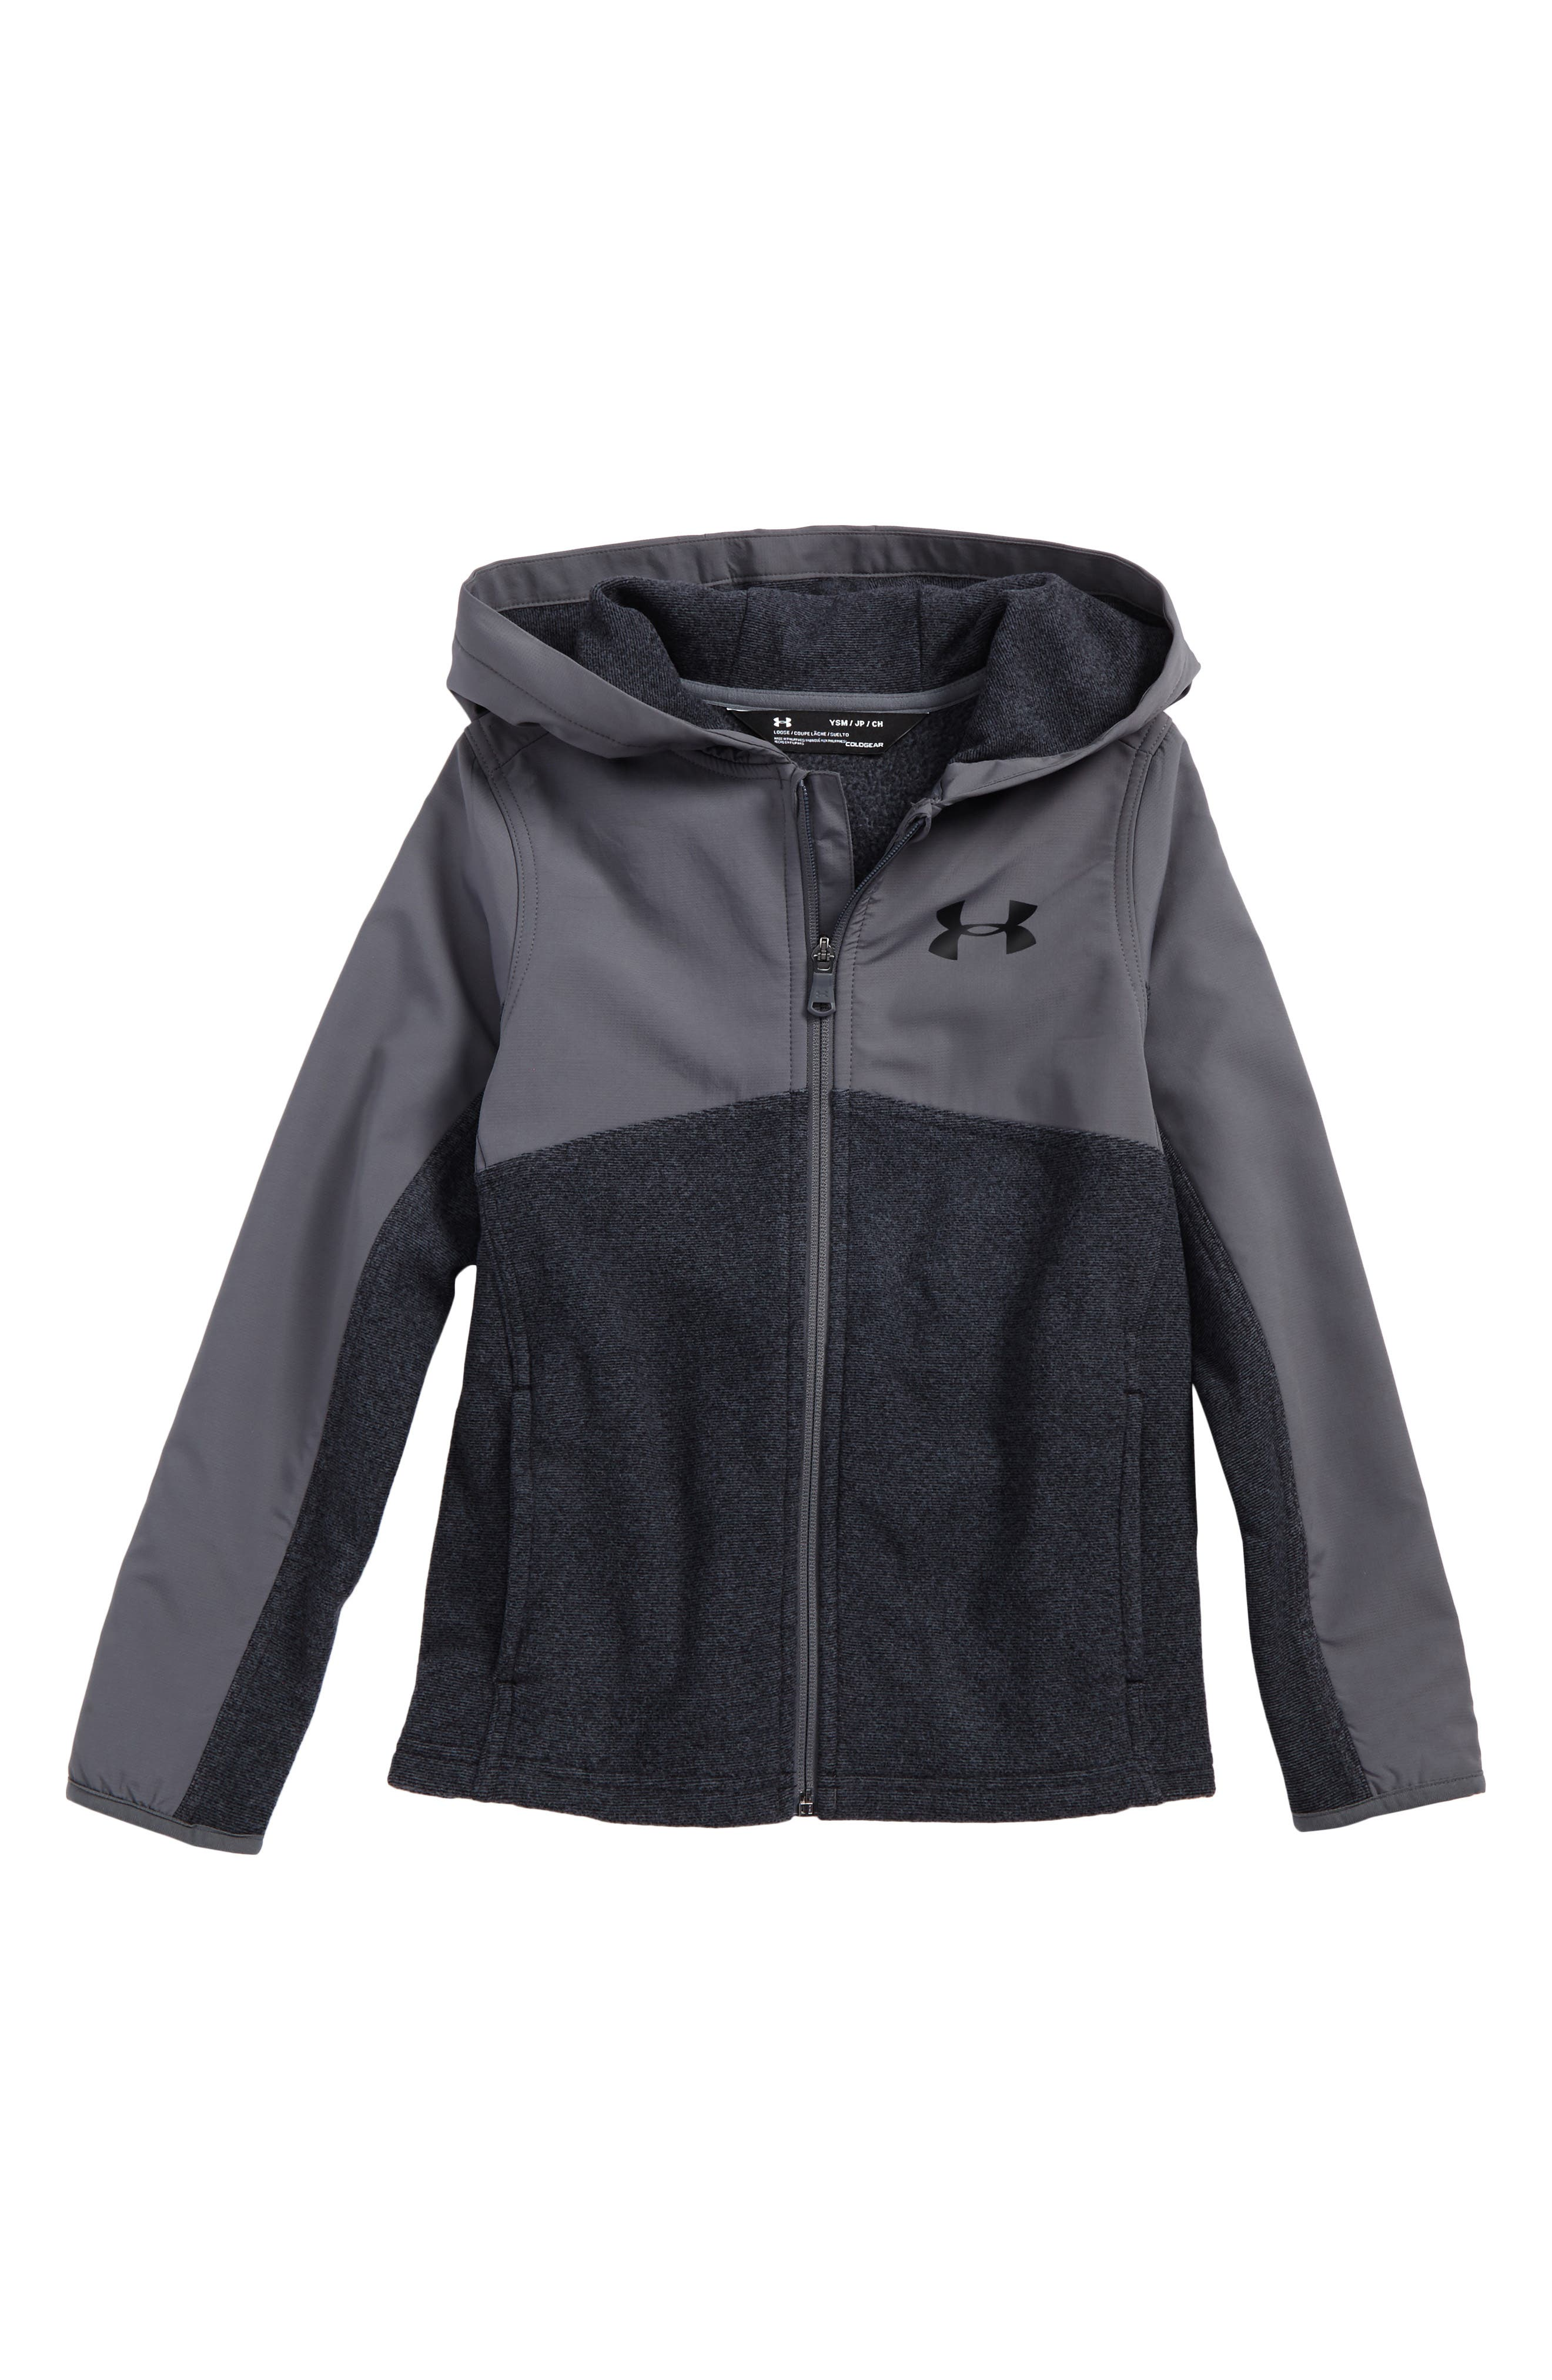 Under Armor Phenom ColdGear<sup>®</sup> Zip Hoodie,                         Main,                         color,